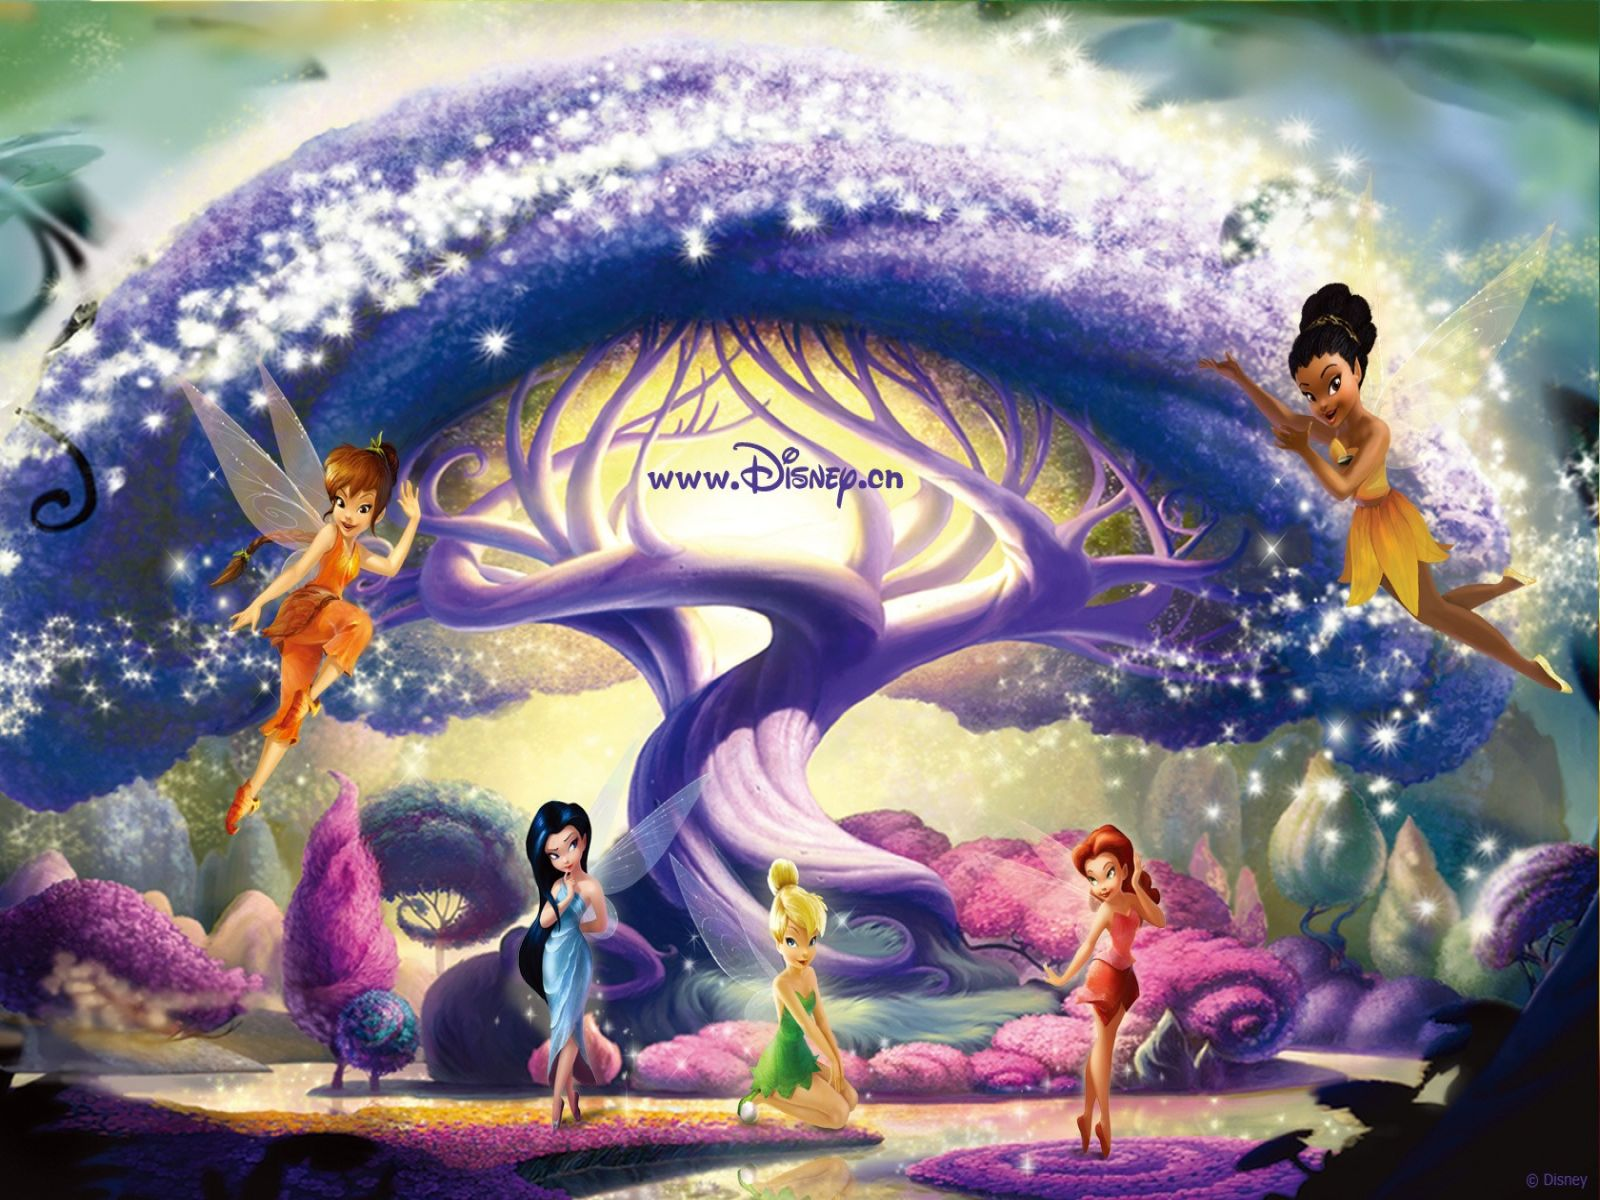 Cartoon Wallpaper Disney Theme 2 Wallpaper 1280x800 1600x1200